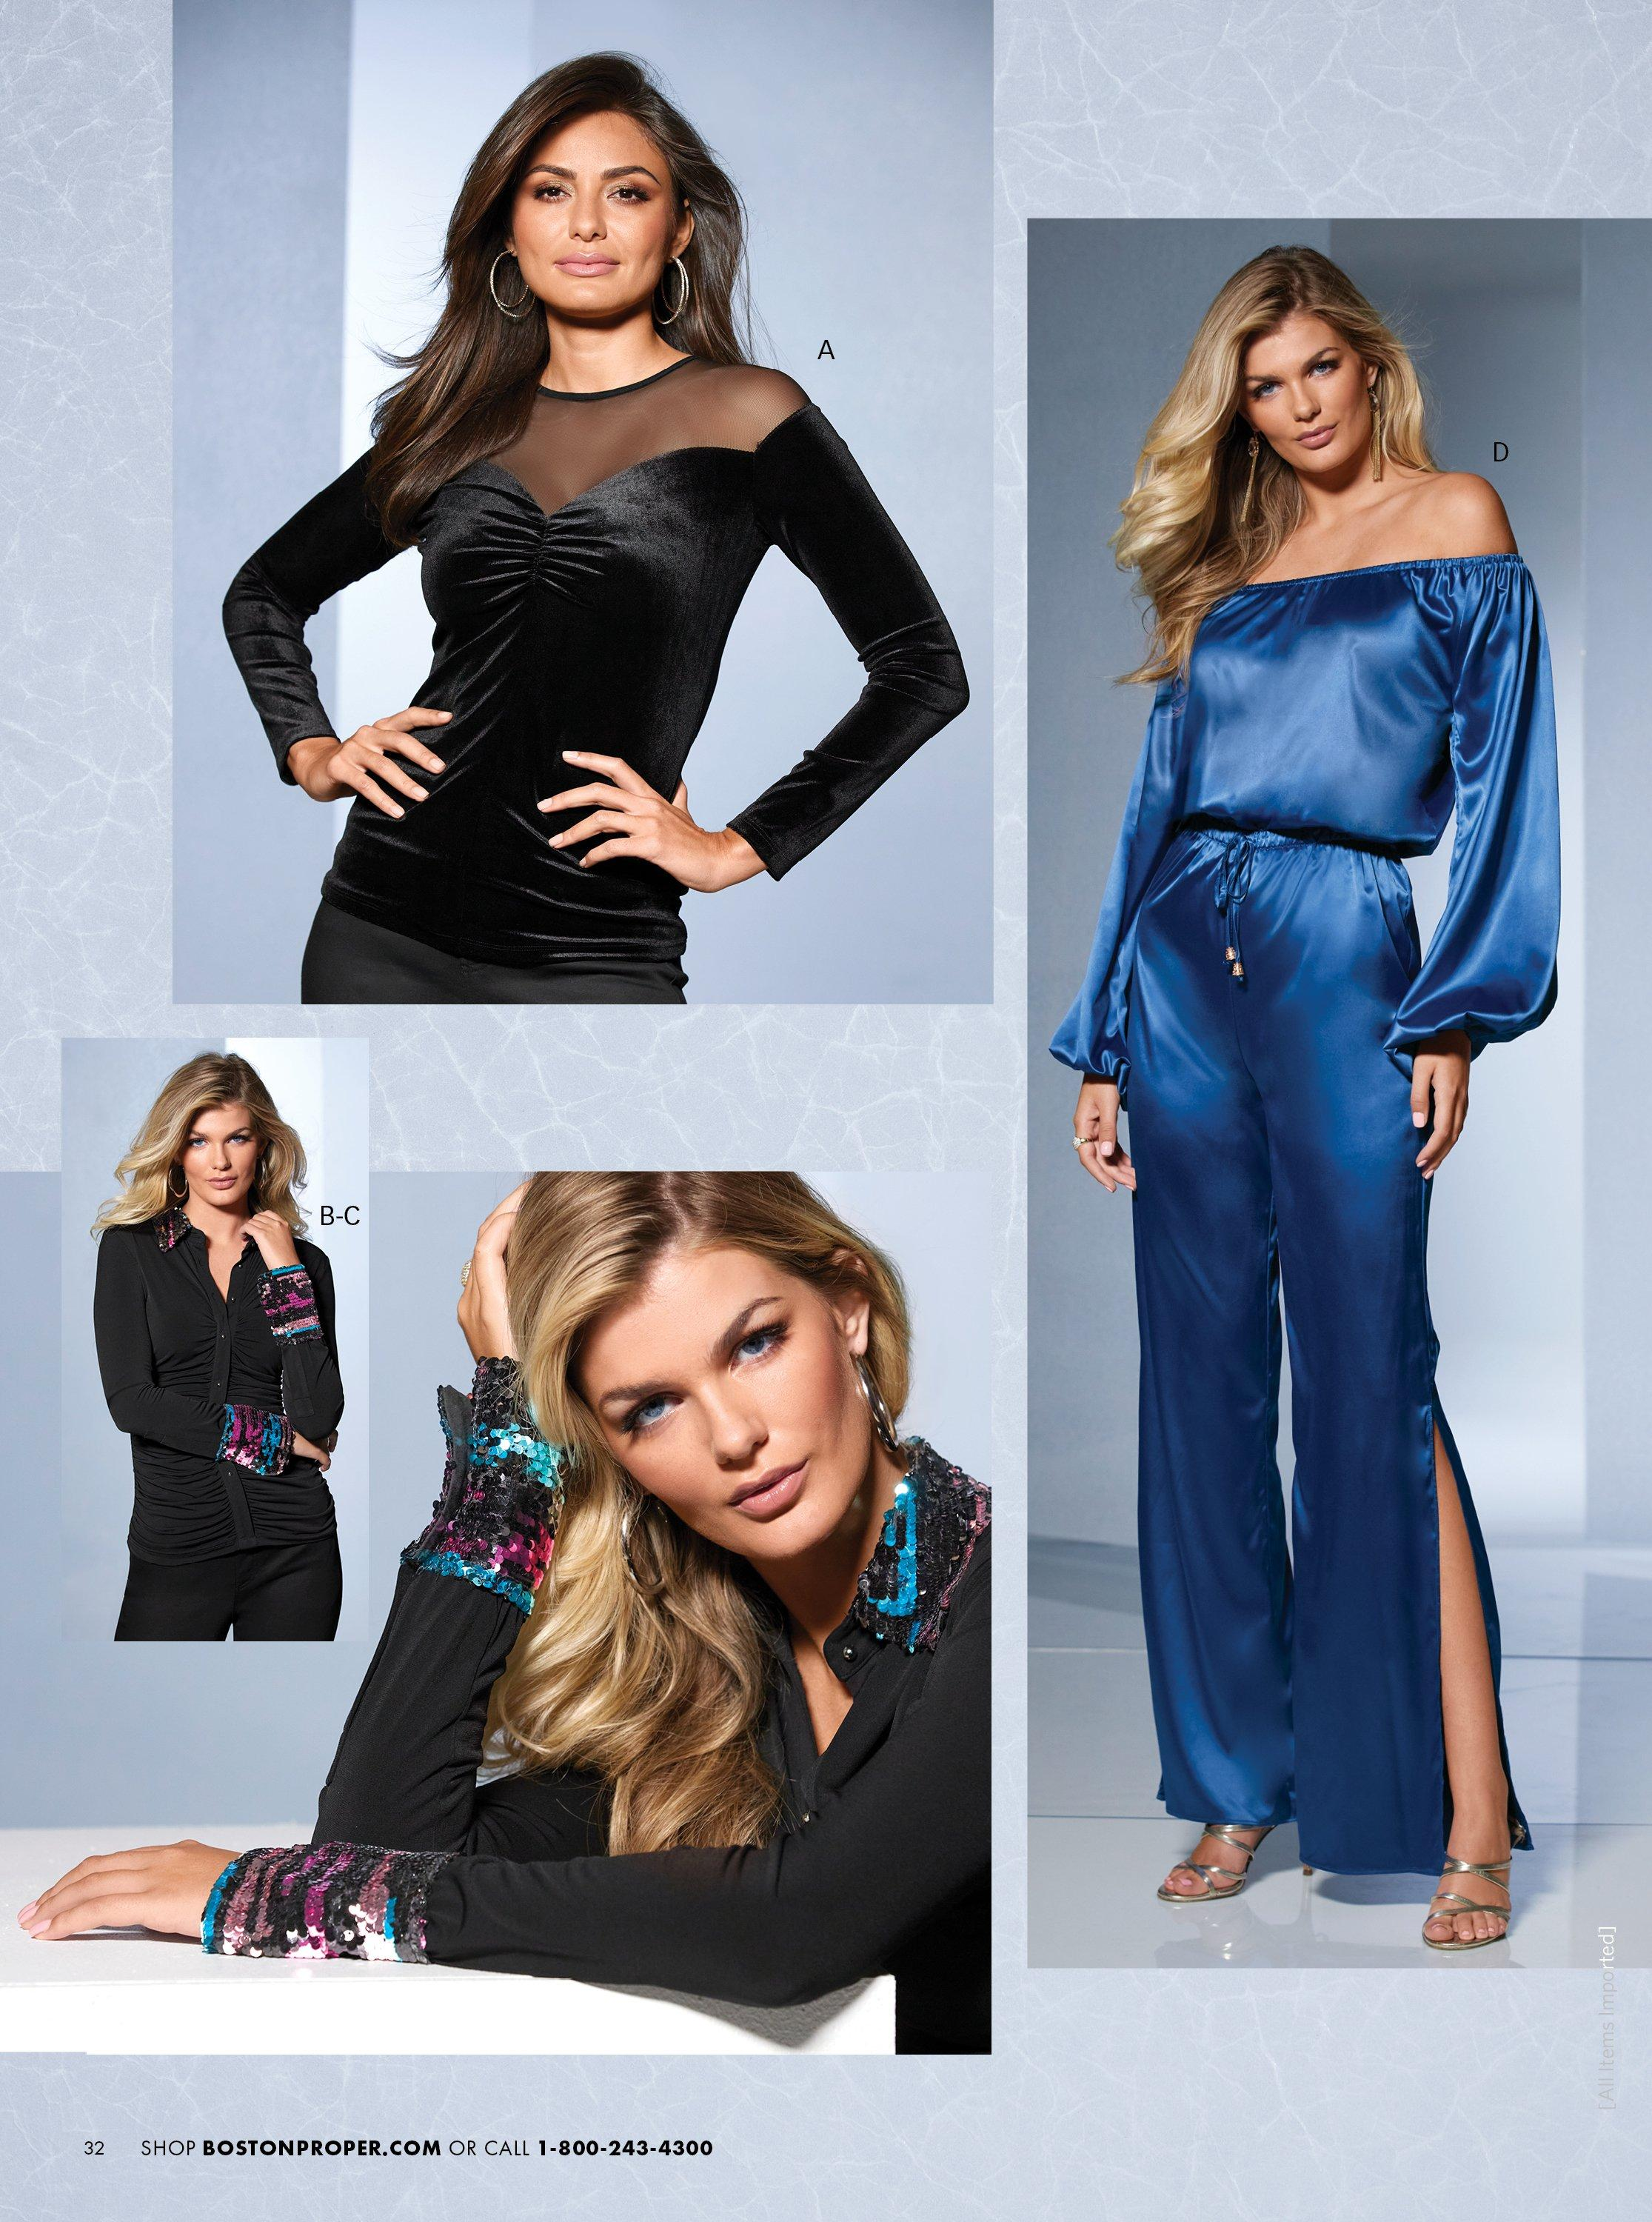 top left model wearing a lack velvet sweetheart top. bottom left model wearing a black long-sleeve top with rainbow sequin embellished cuffs and collar and silver hoop earrings. right model wearing a blue off-the-shoulder charm jumpsuit.